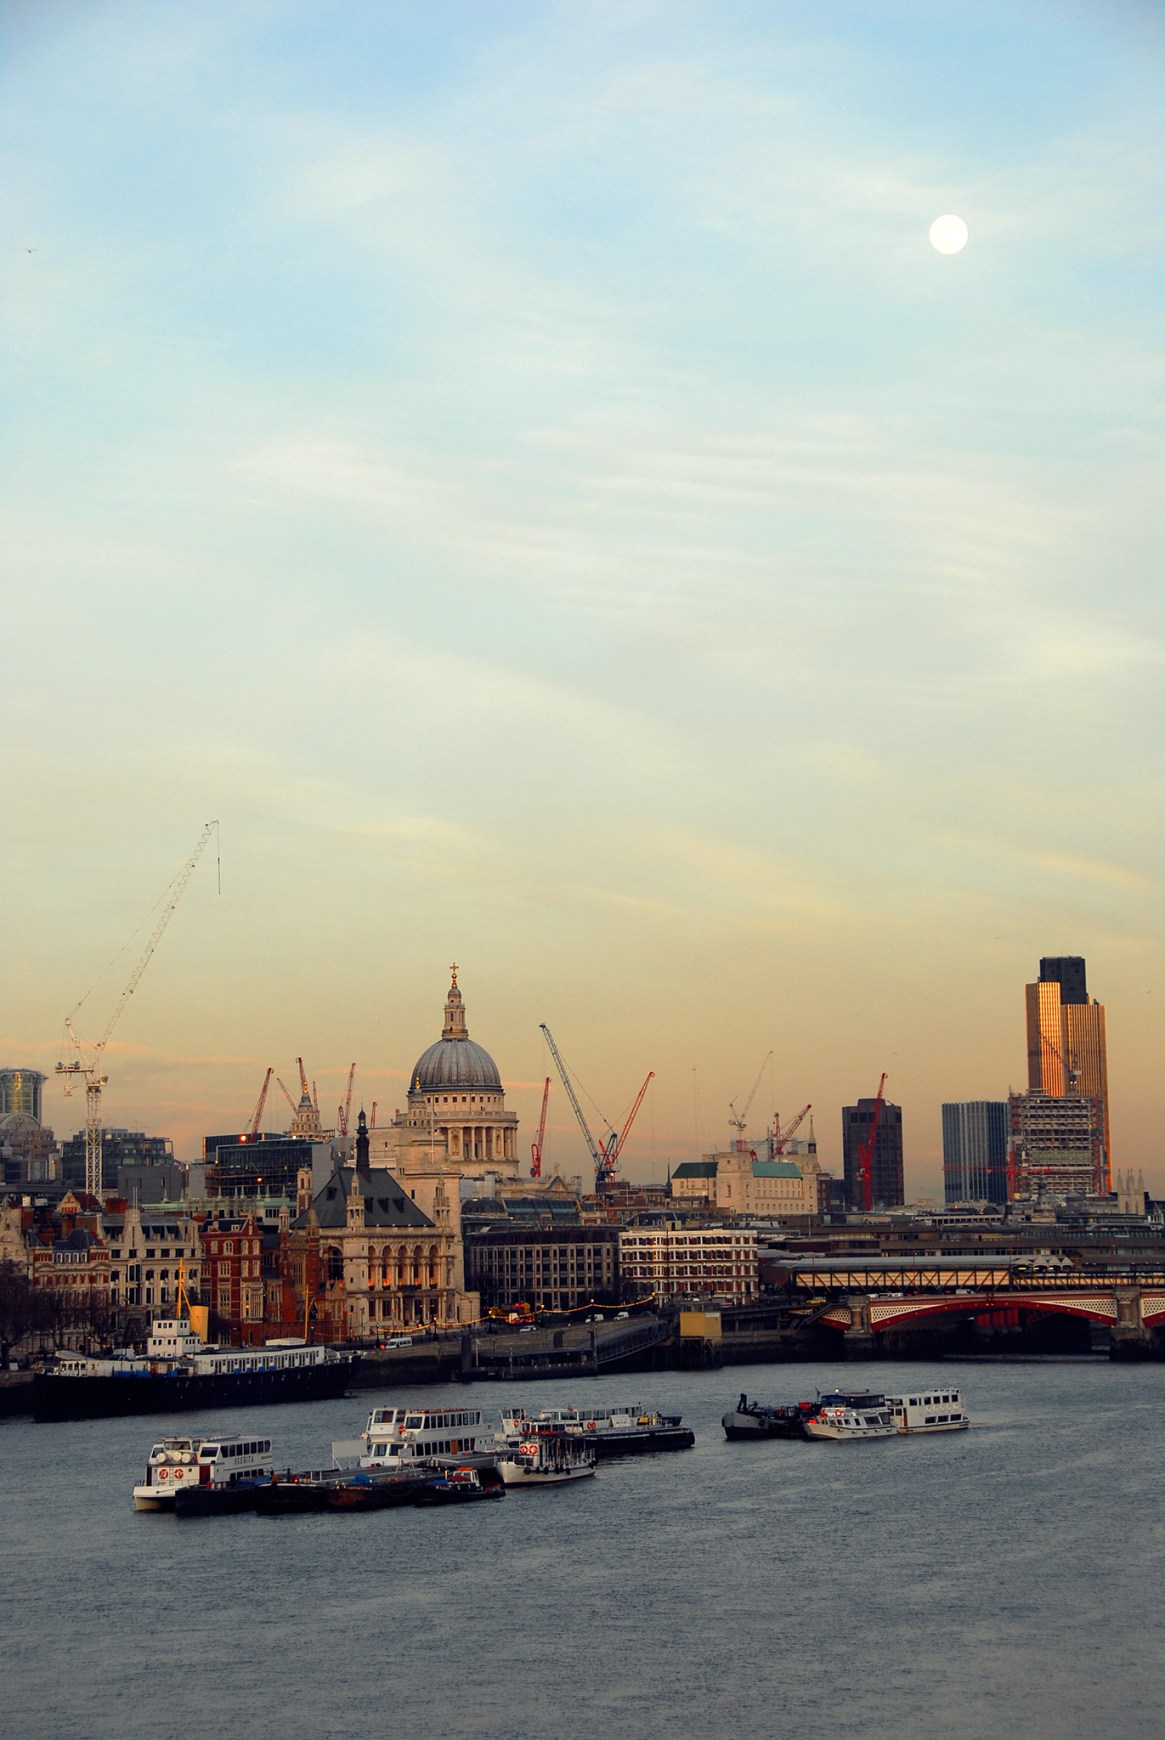 The City of London viewed from the River Thames at sunset